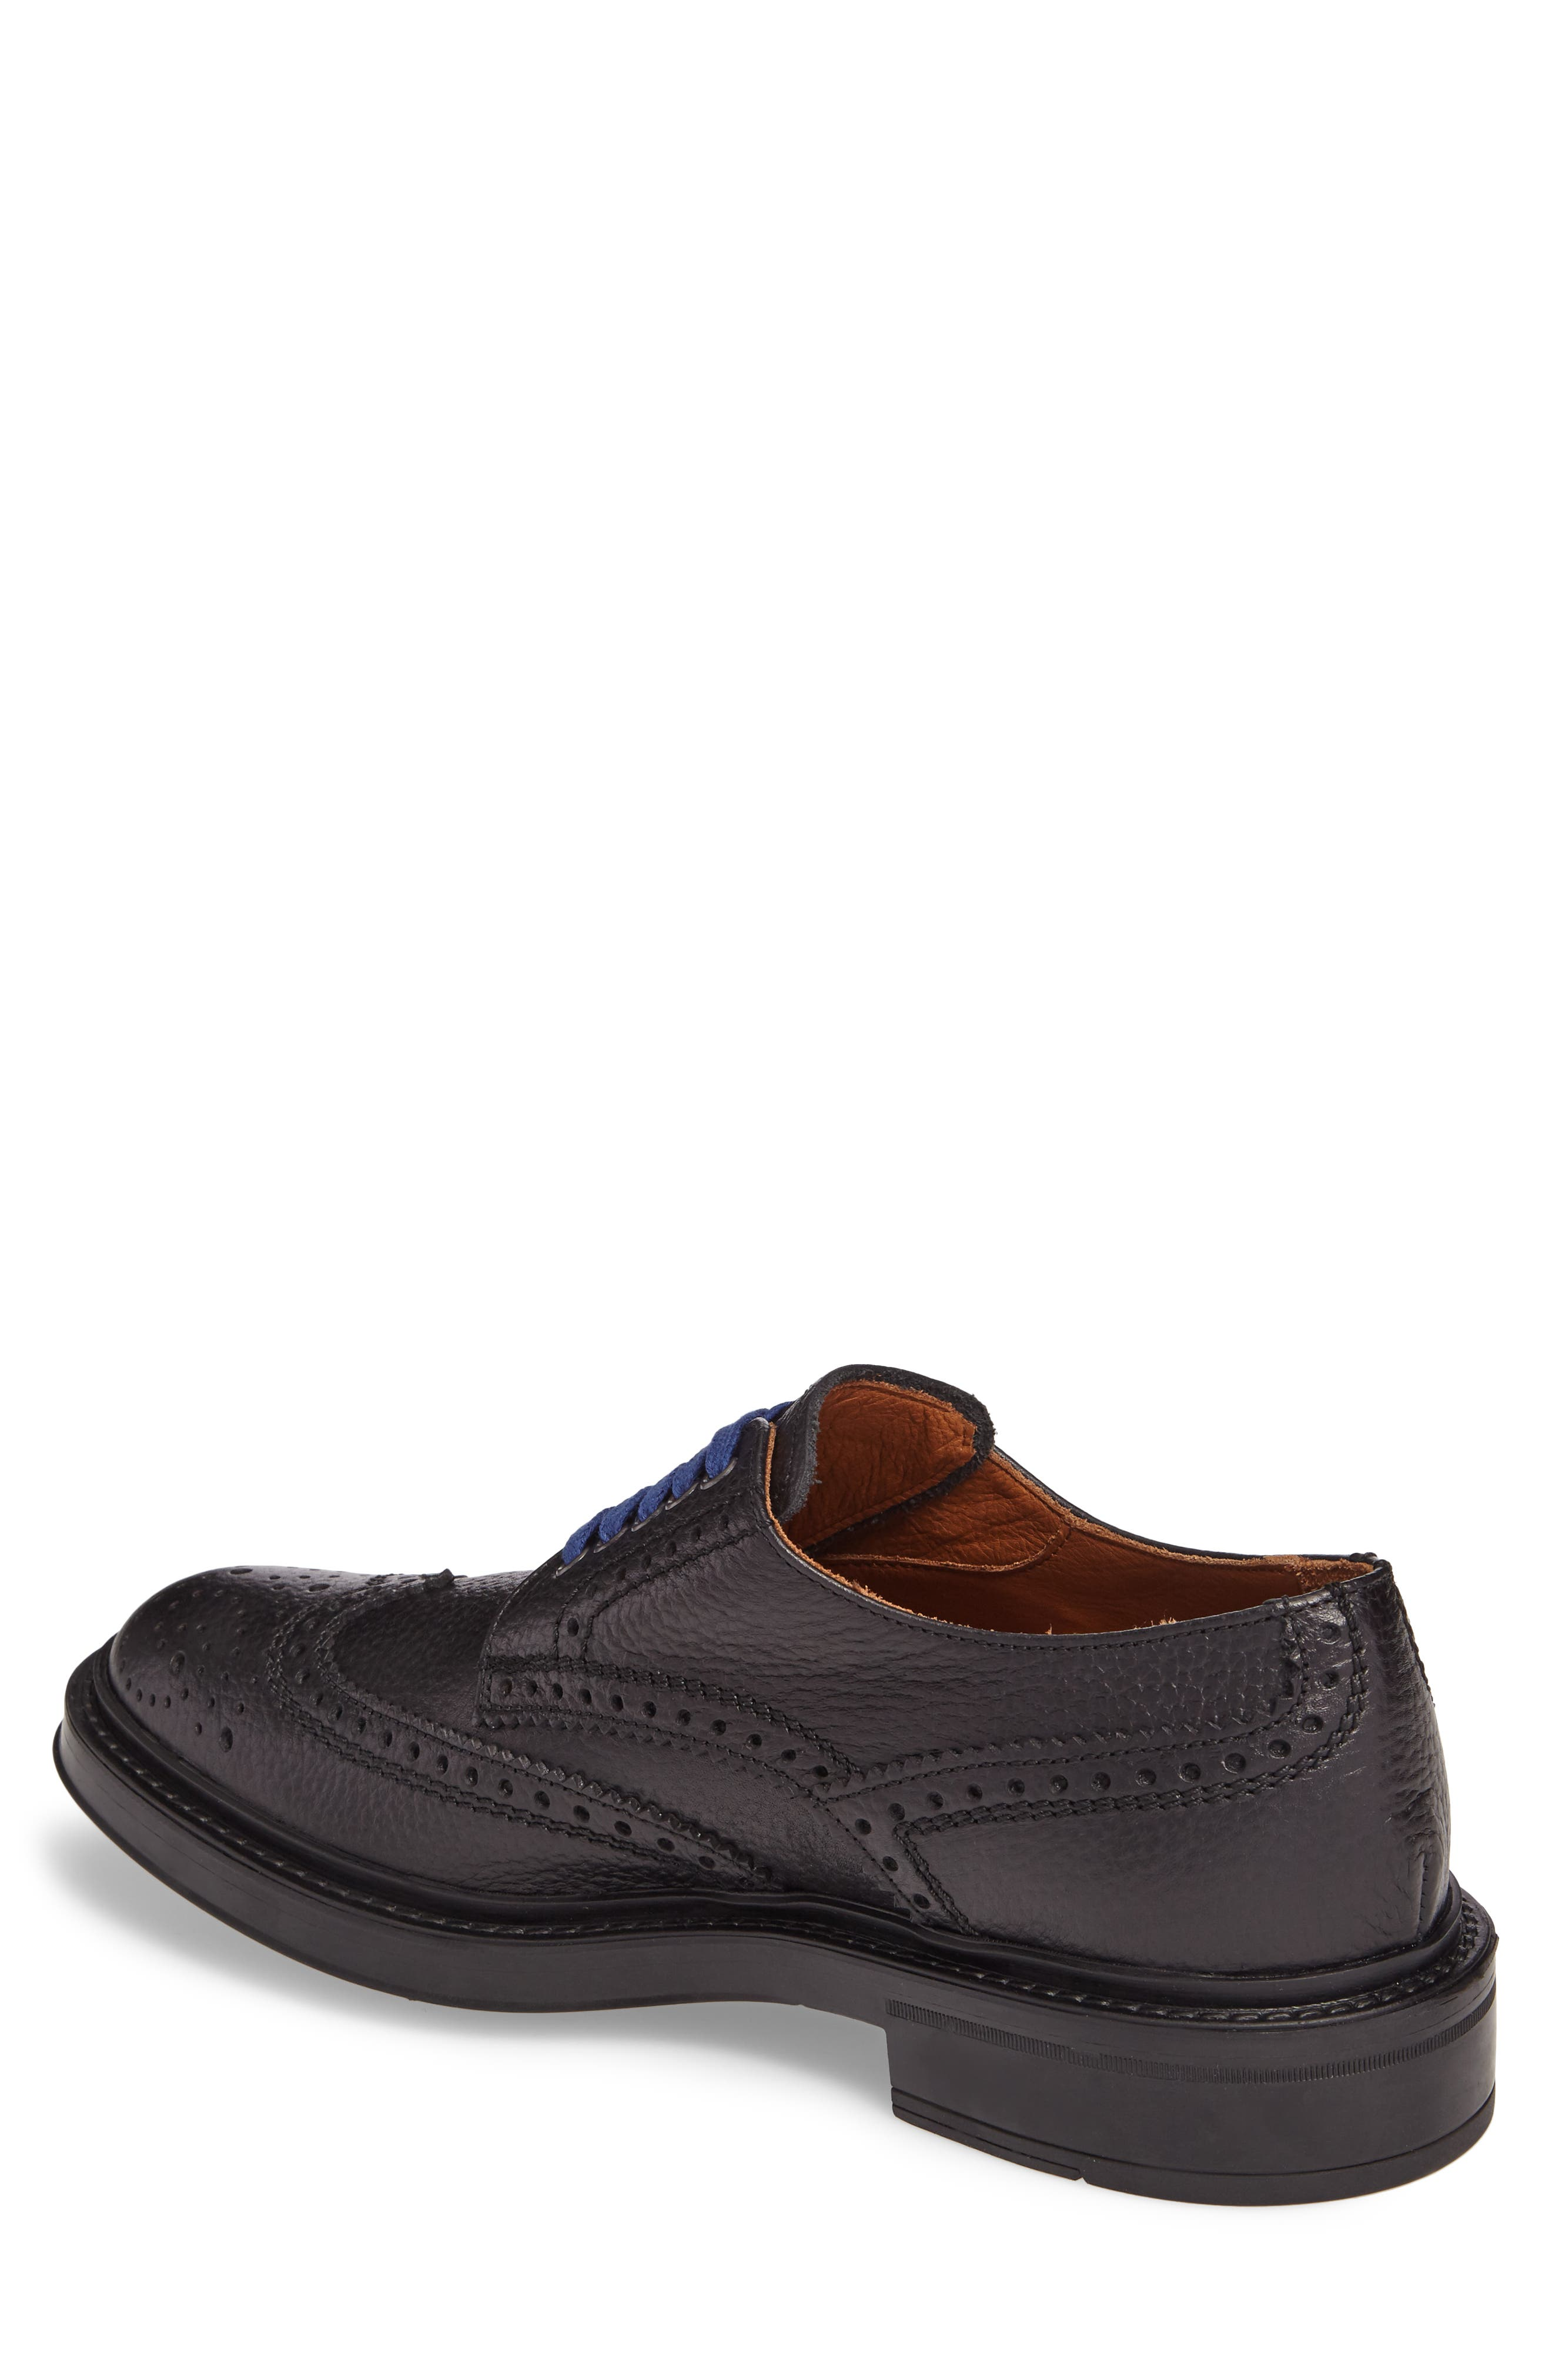 Landon Weatherproof Wingtip,                             Alternate thumbnail 2, color,                             Black